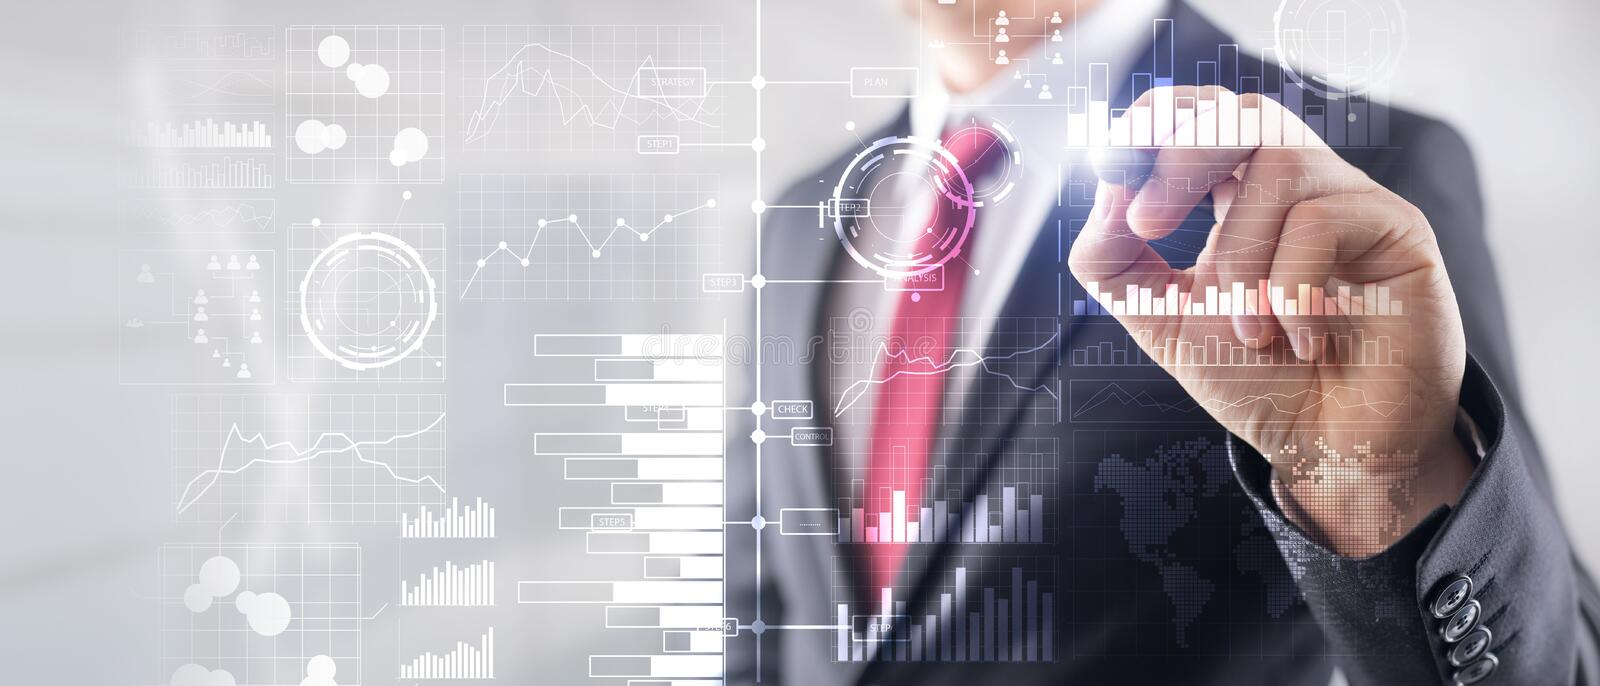 Business intelligence. Diagram, Graph, Stock Trading, Investment dashboard, transparent blurred background. Business royalty free stock image